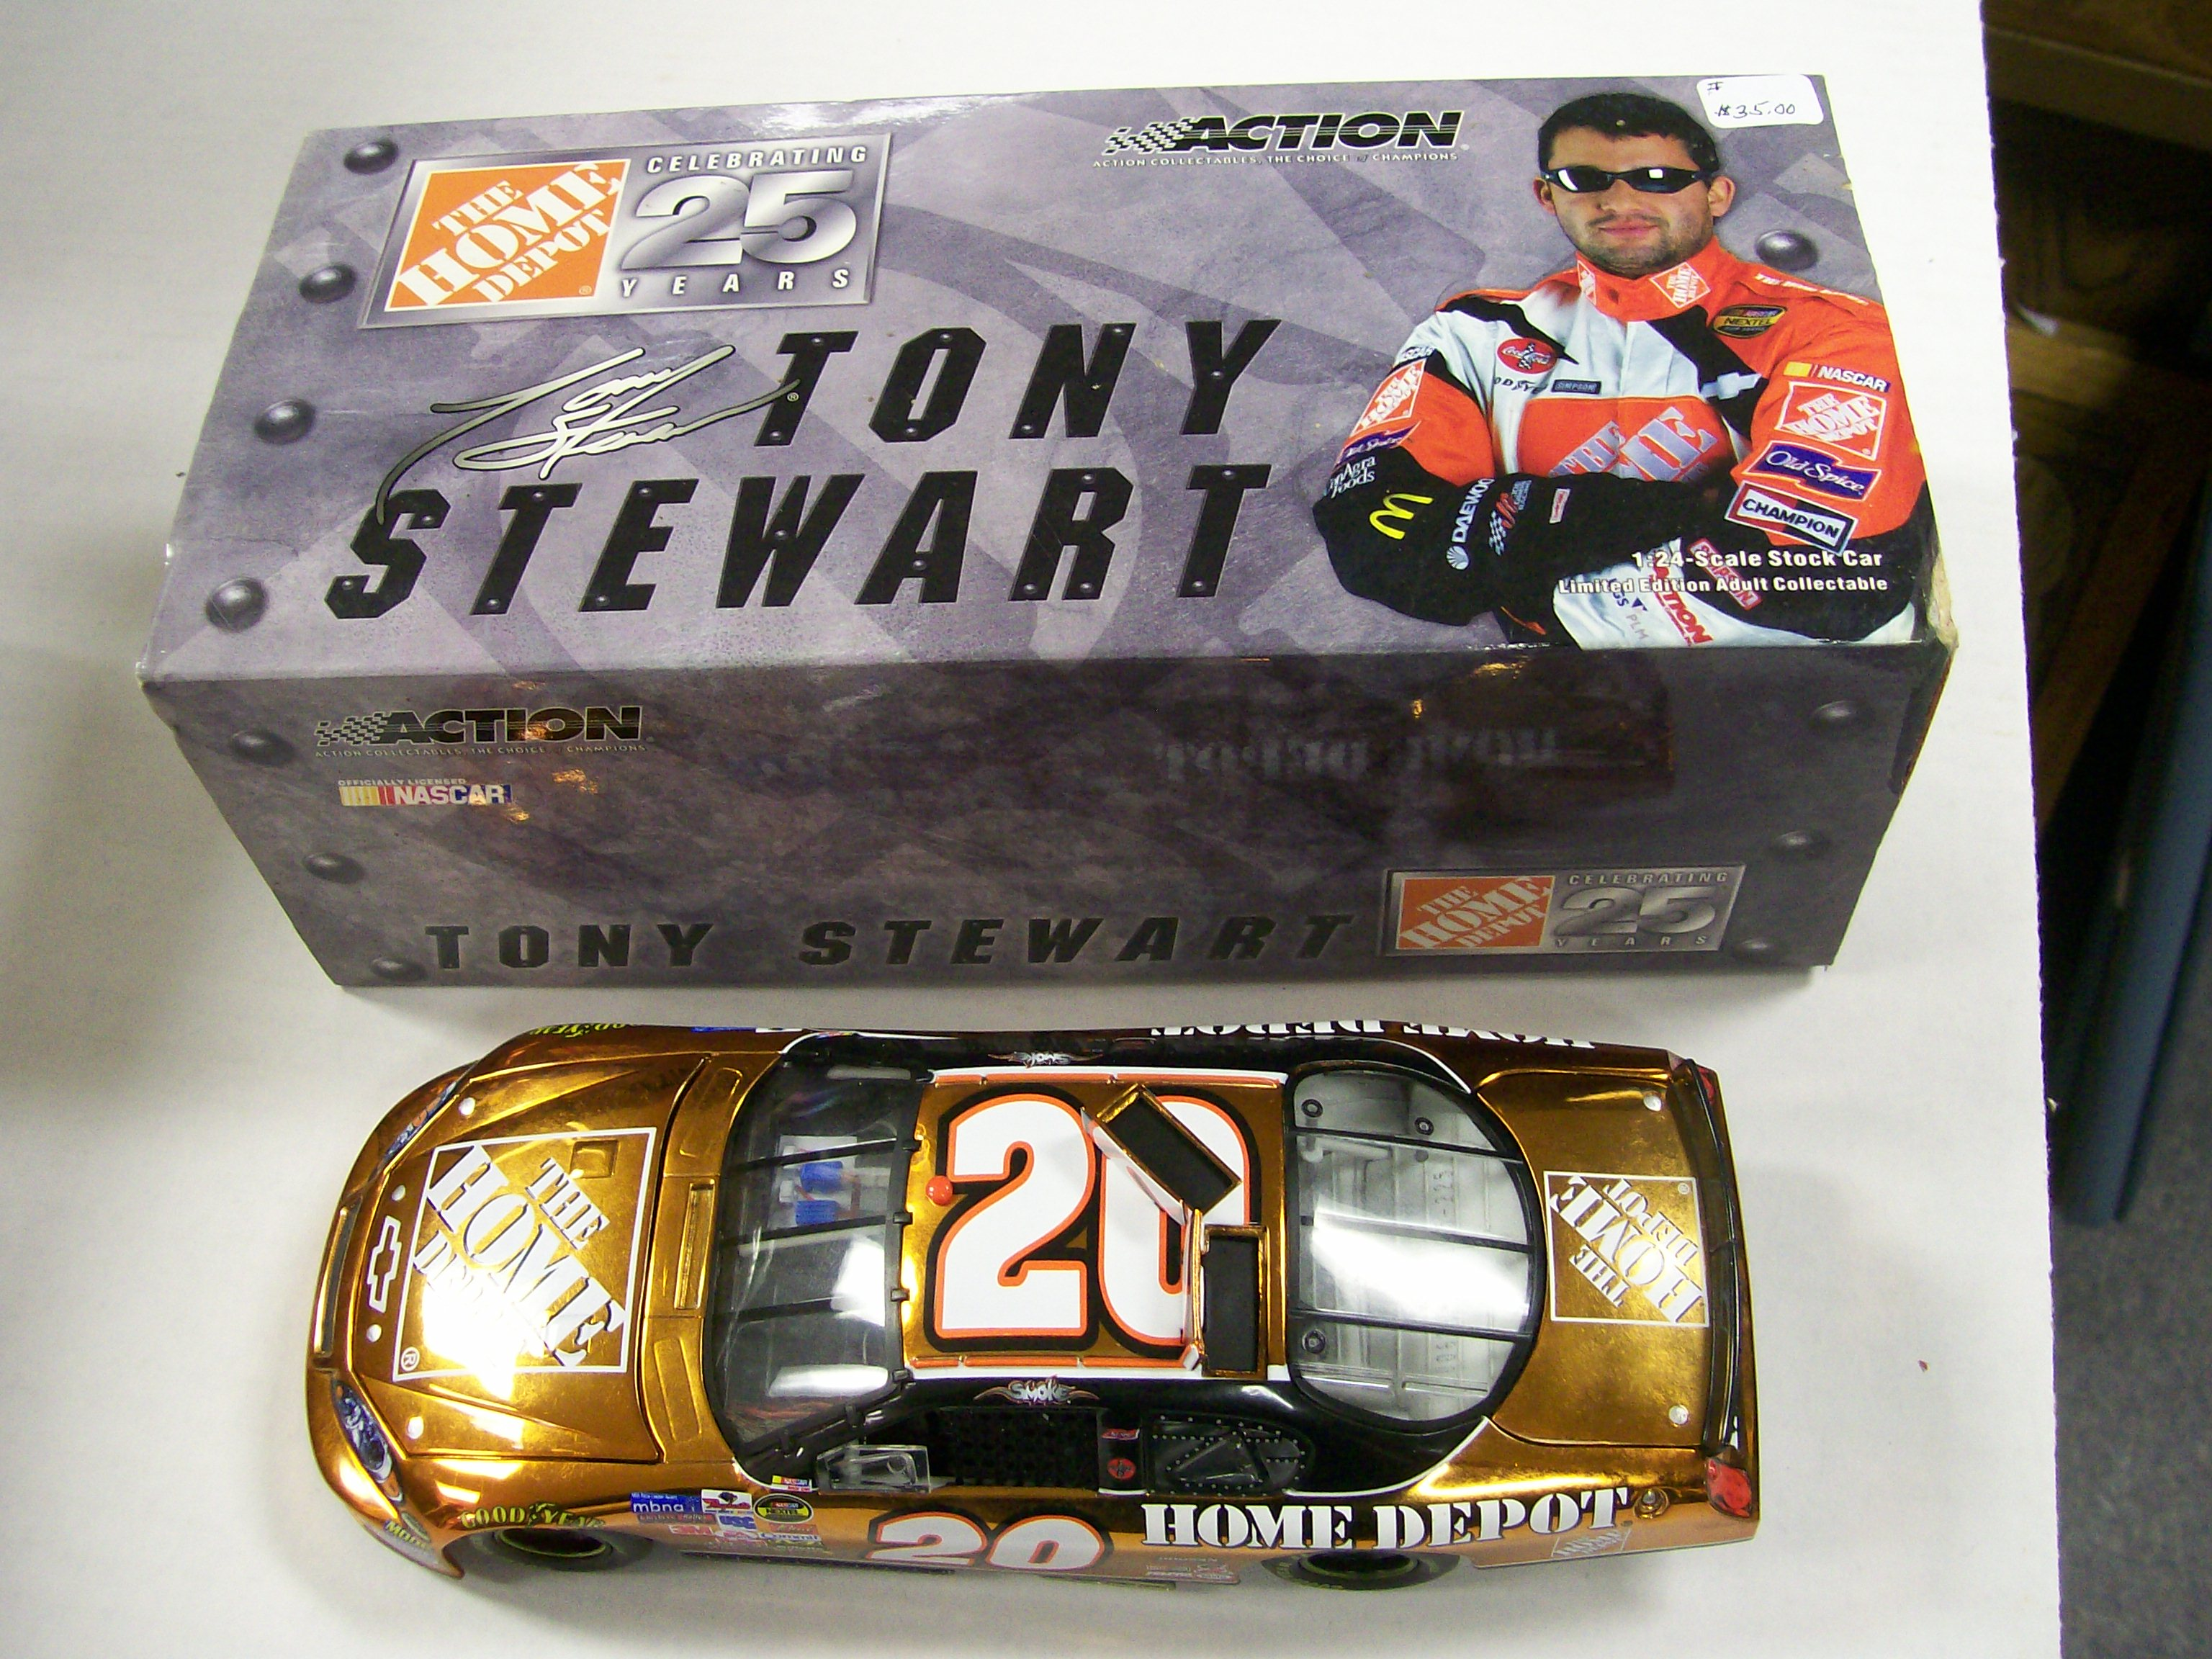 Tony Stewart 25 years Nascar Home Depot 1/24 scale Monte Carlo